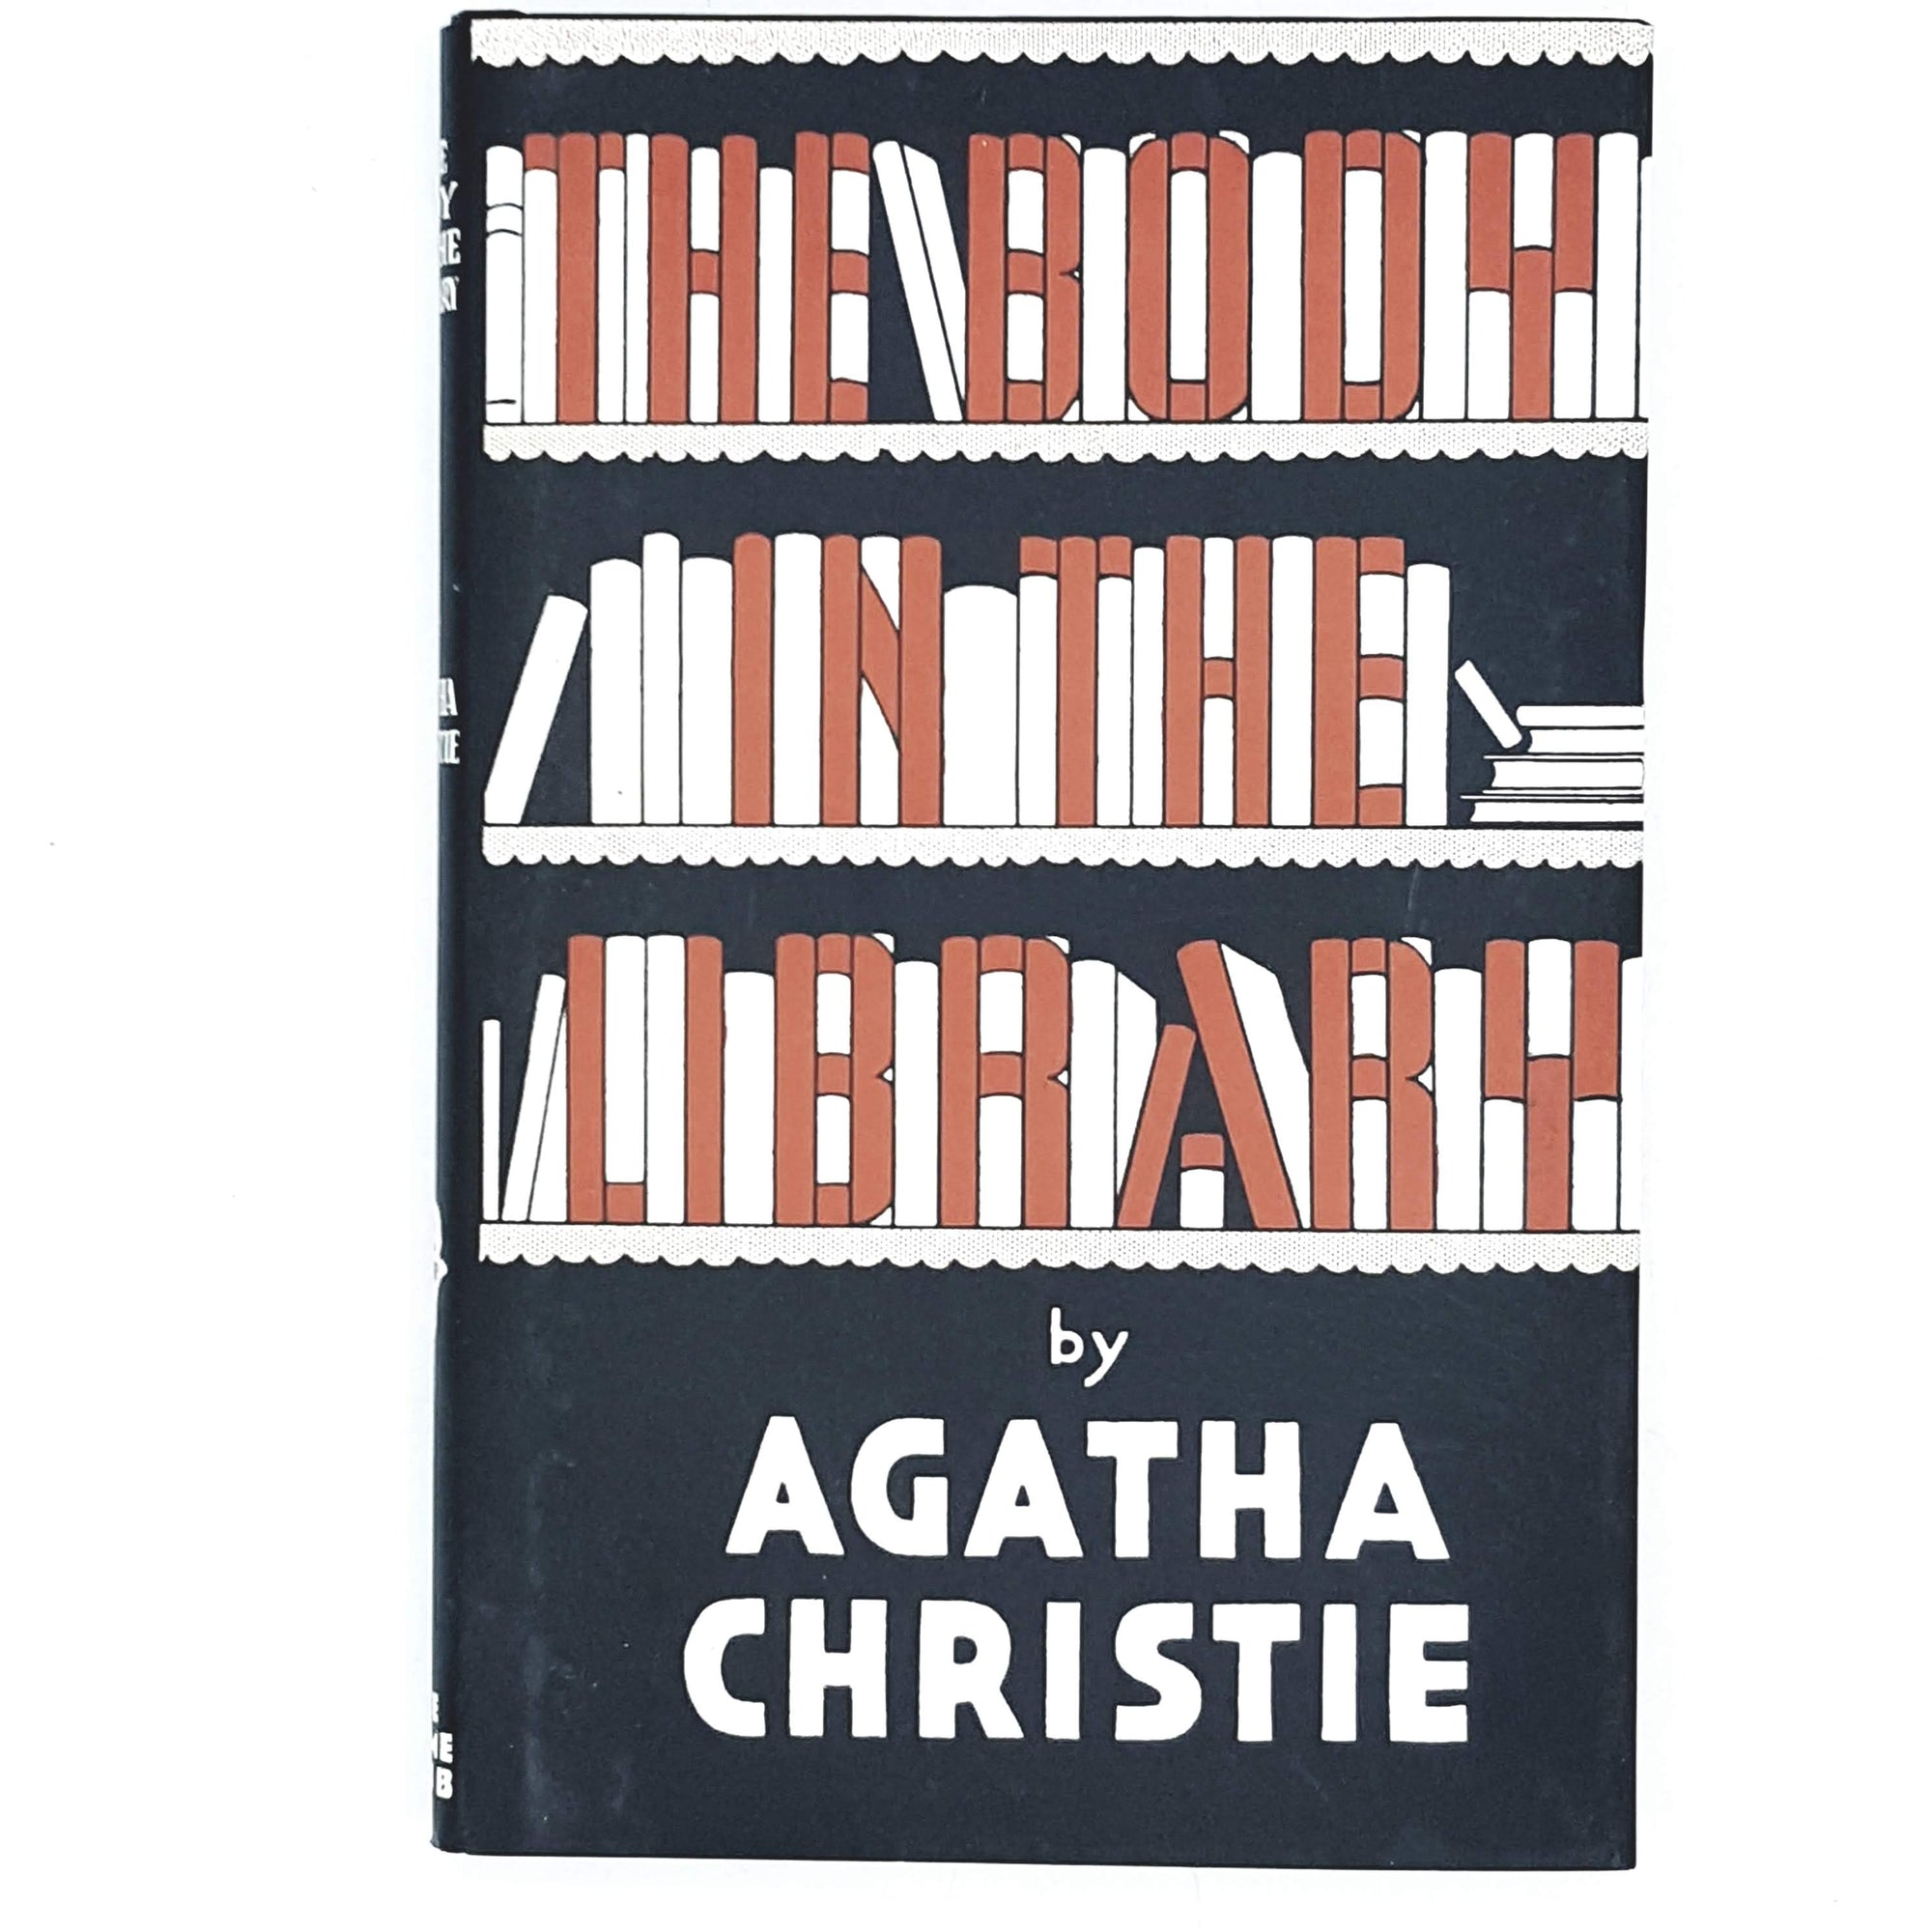 Agatha Christie's The Body in the Library